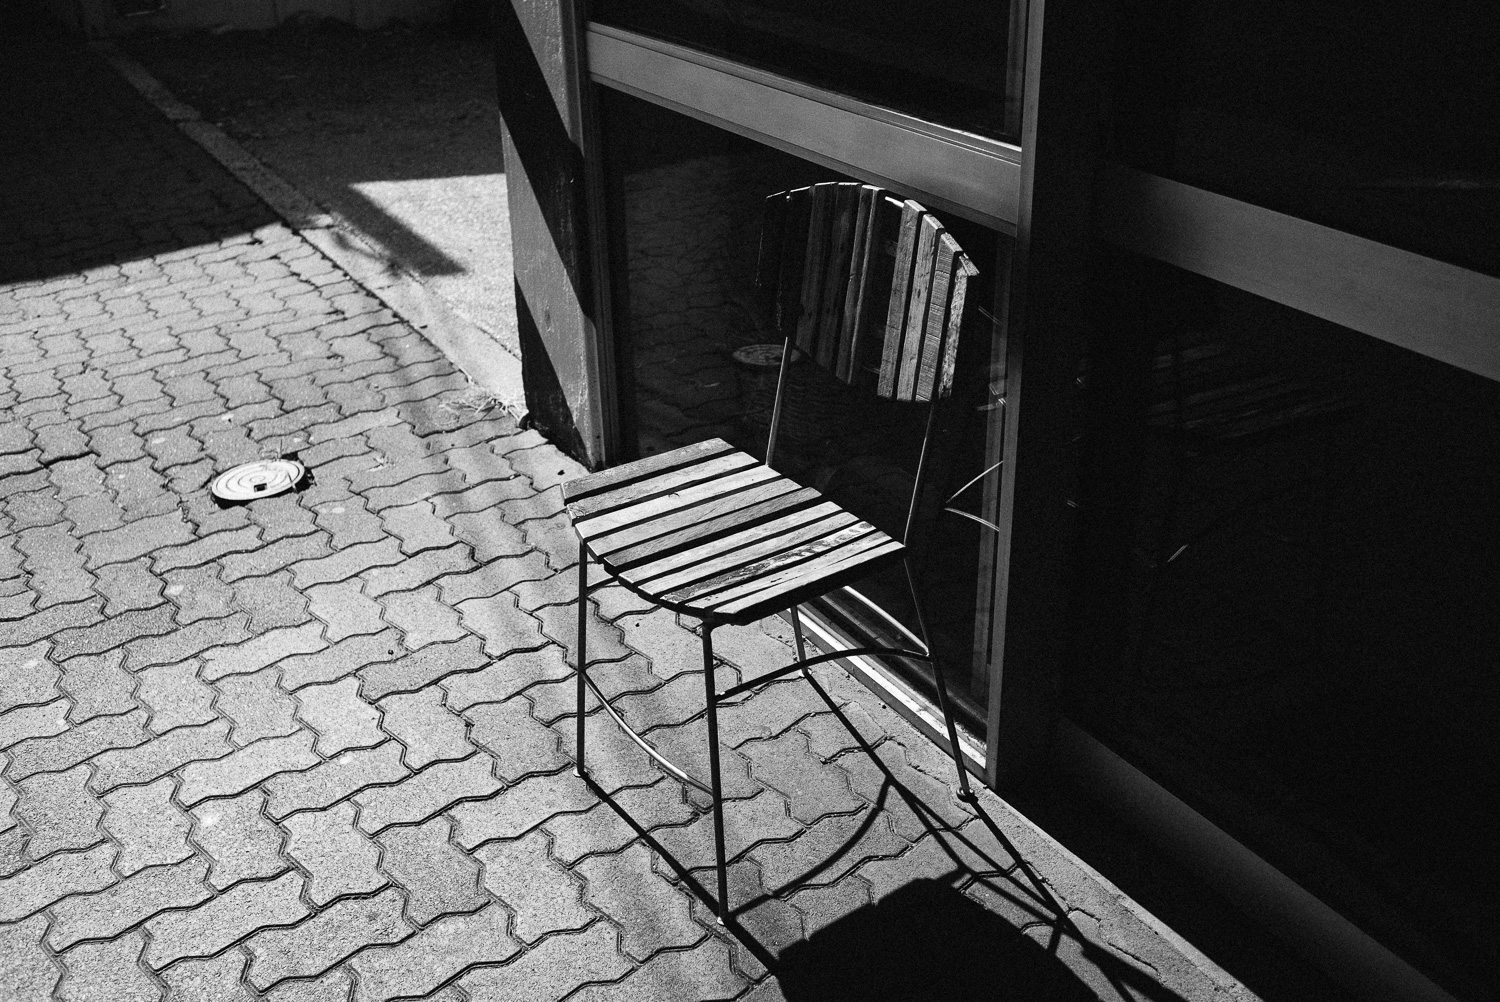 A chair basking in the sun, trying to get it's tan on.